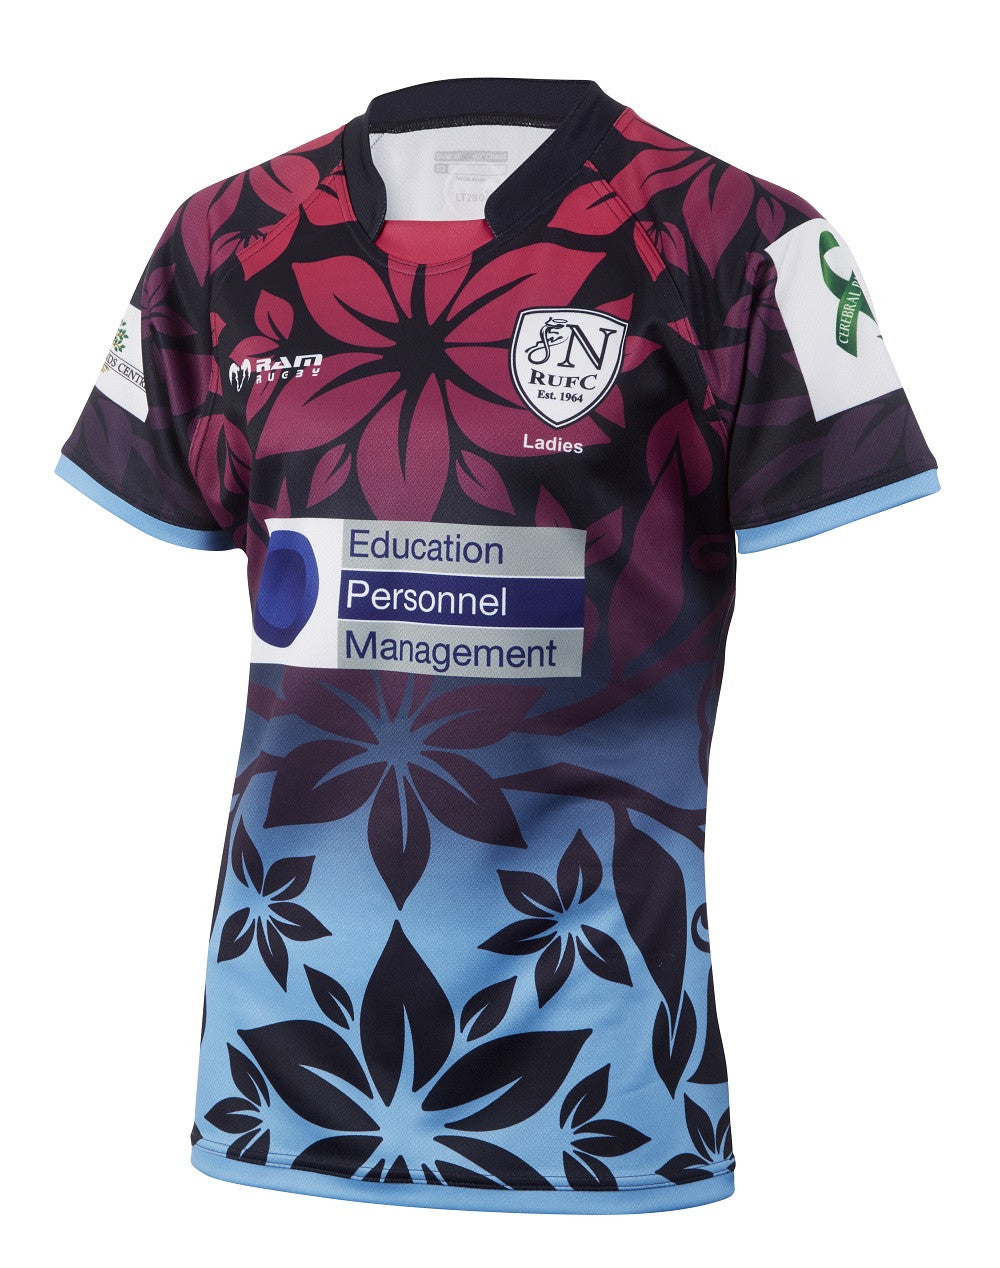 c035ef087c8 Reversible Sublimated Rugby Shirt - Shirts - Ram Rugby